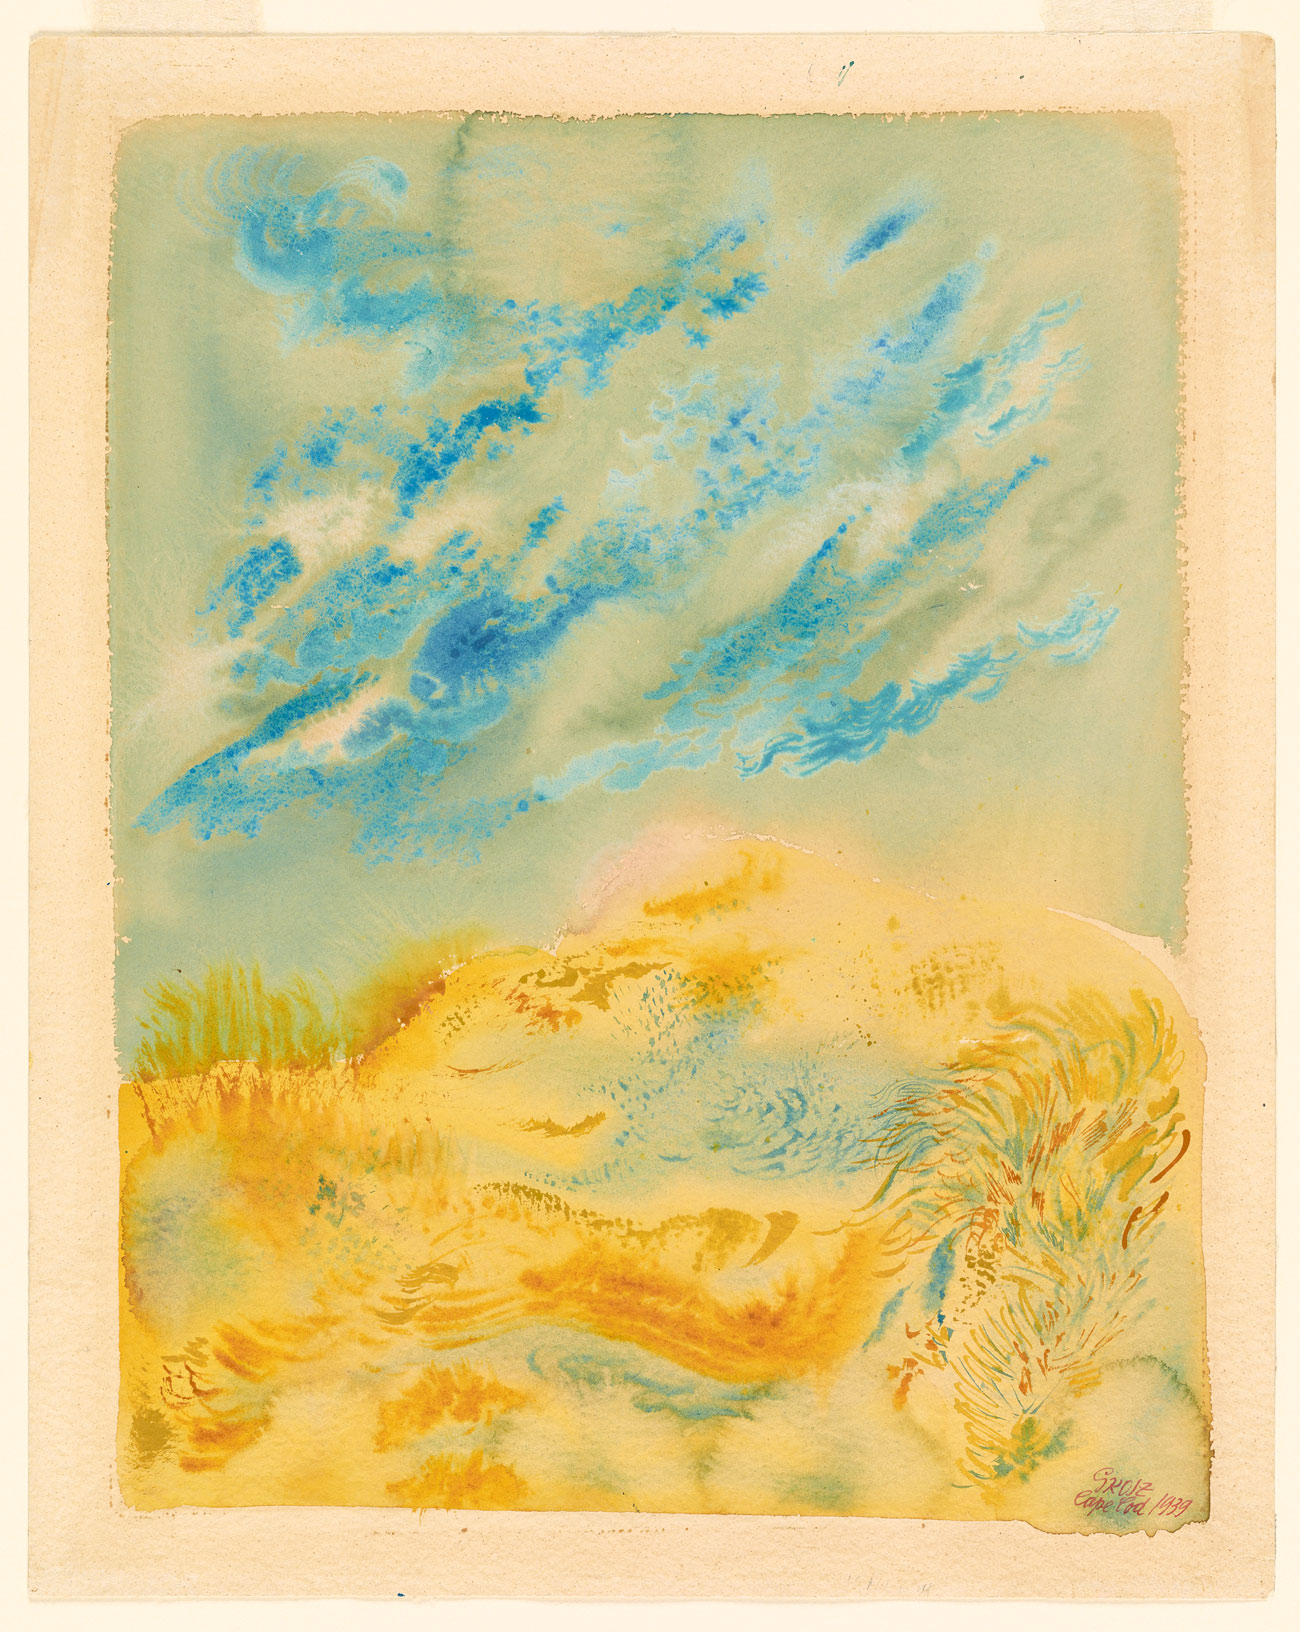 Abstract yellow sandy dunes beneath a blue and white sky